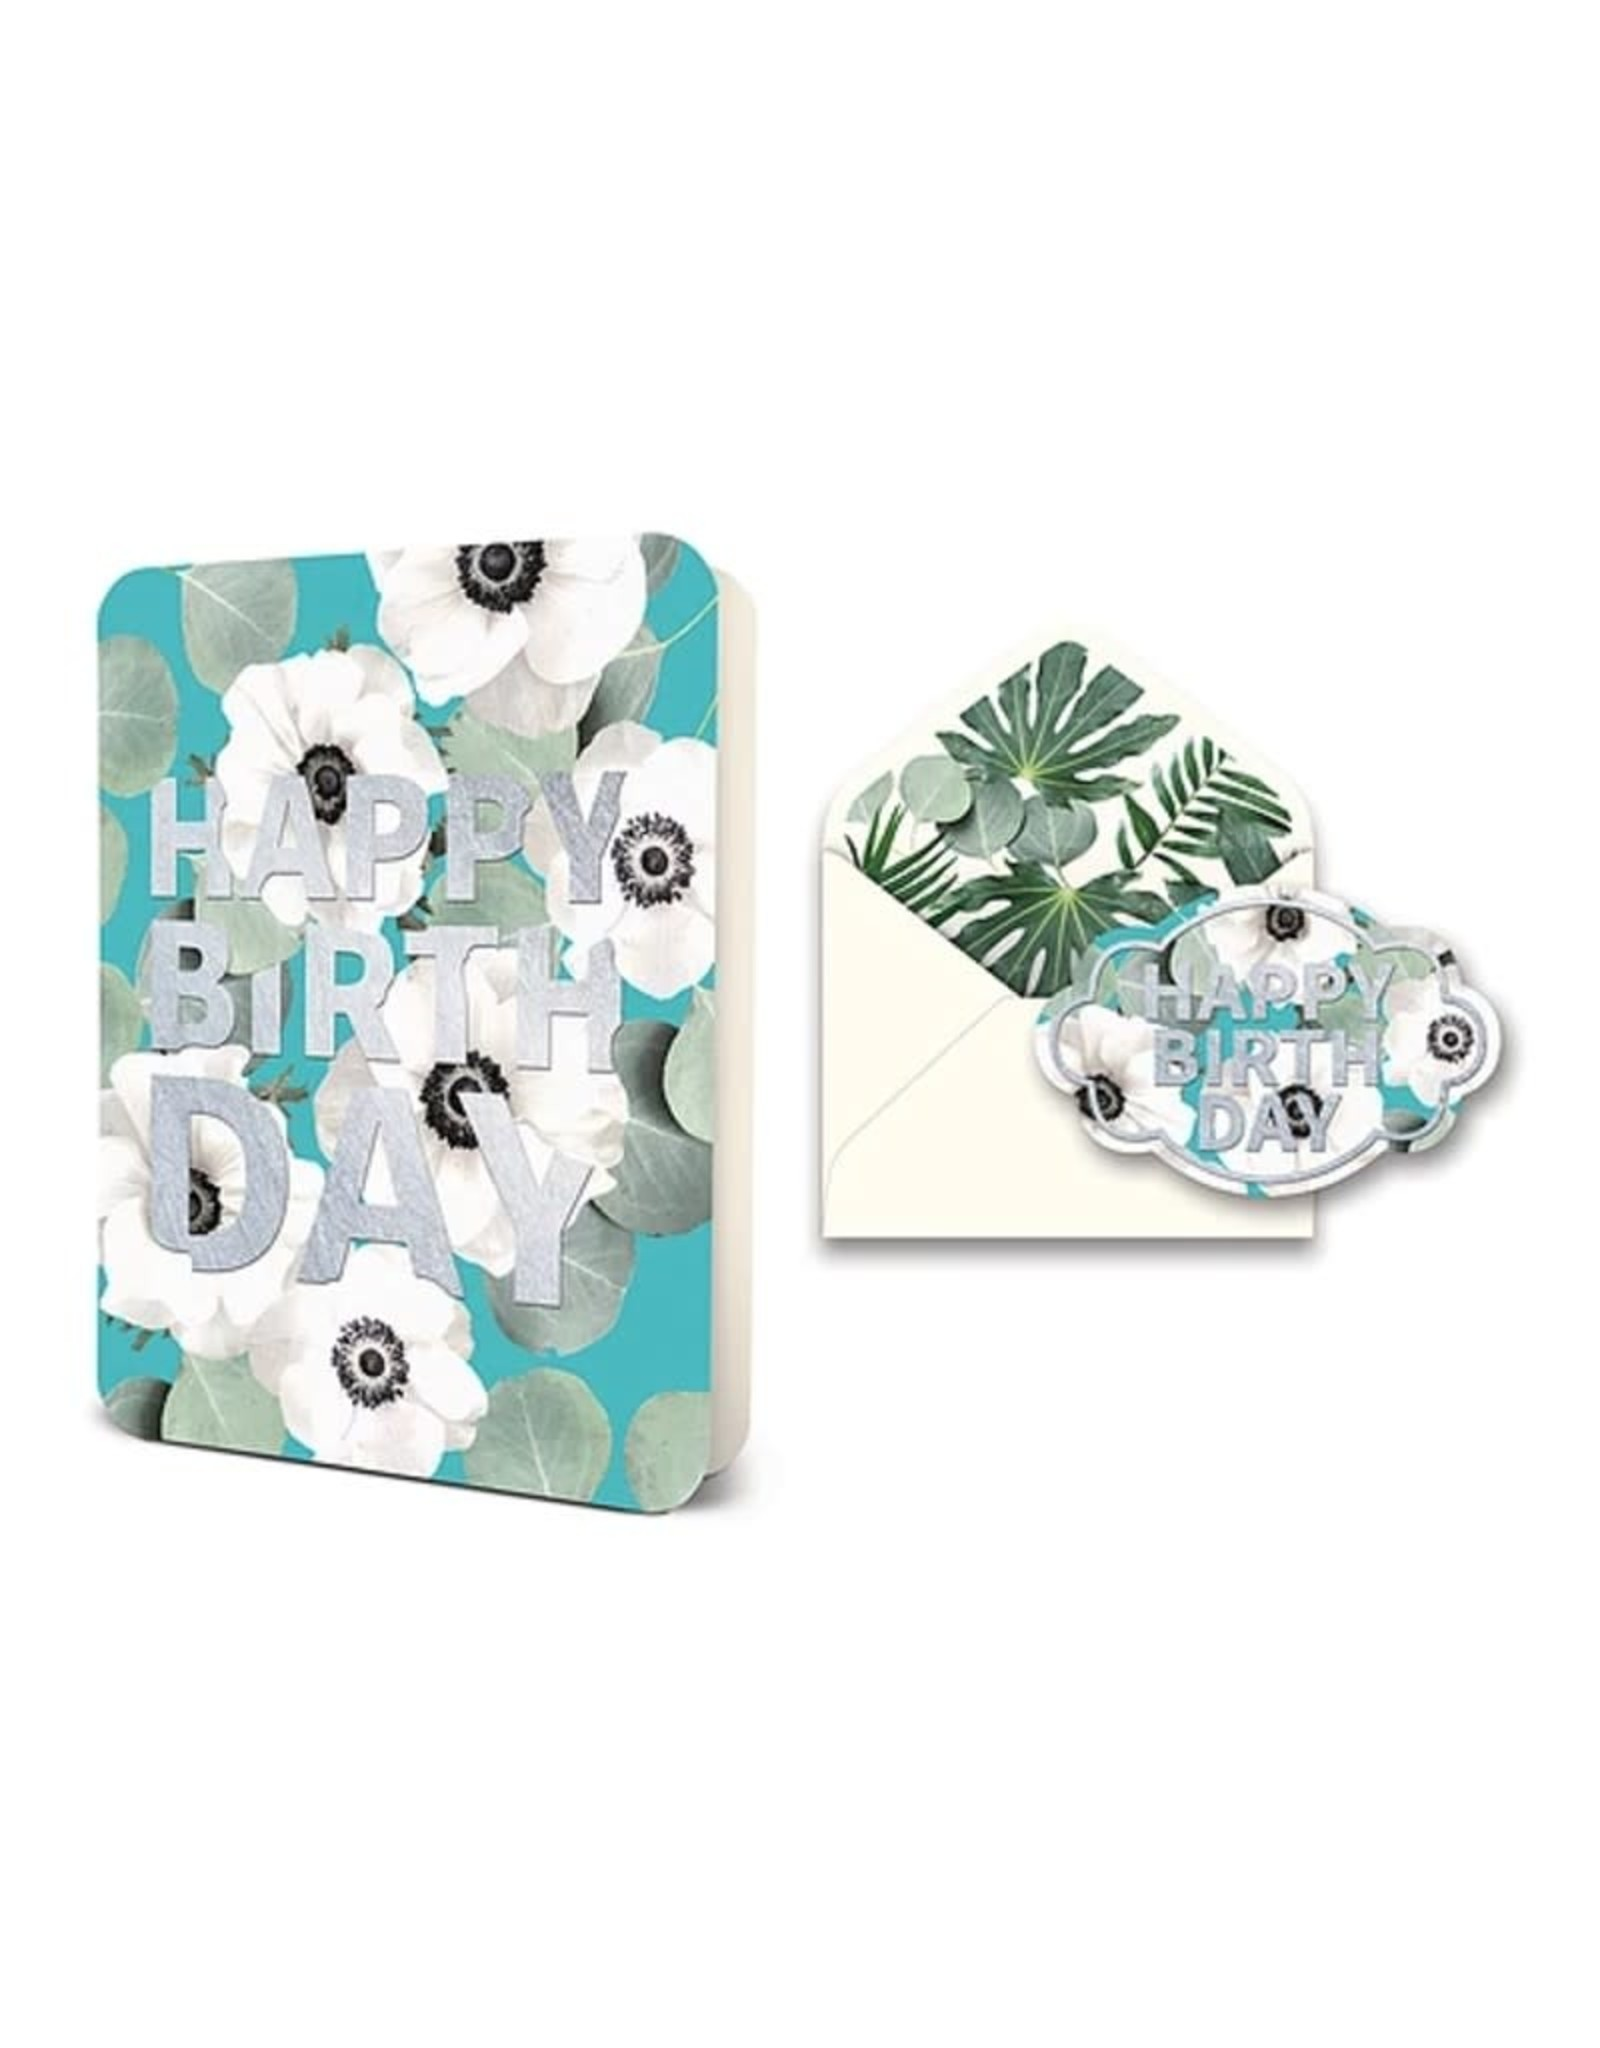 Studio Oh! Deluxe Card Sets